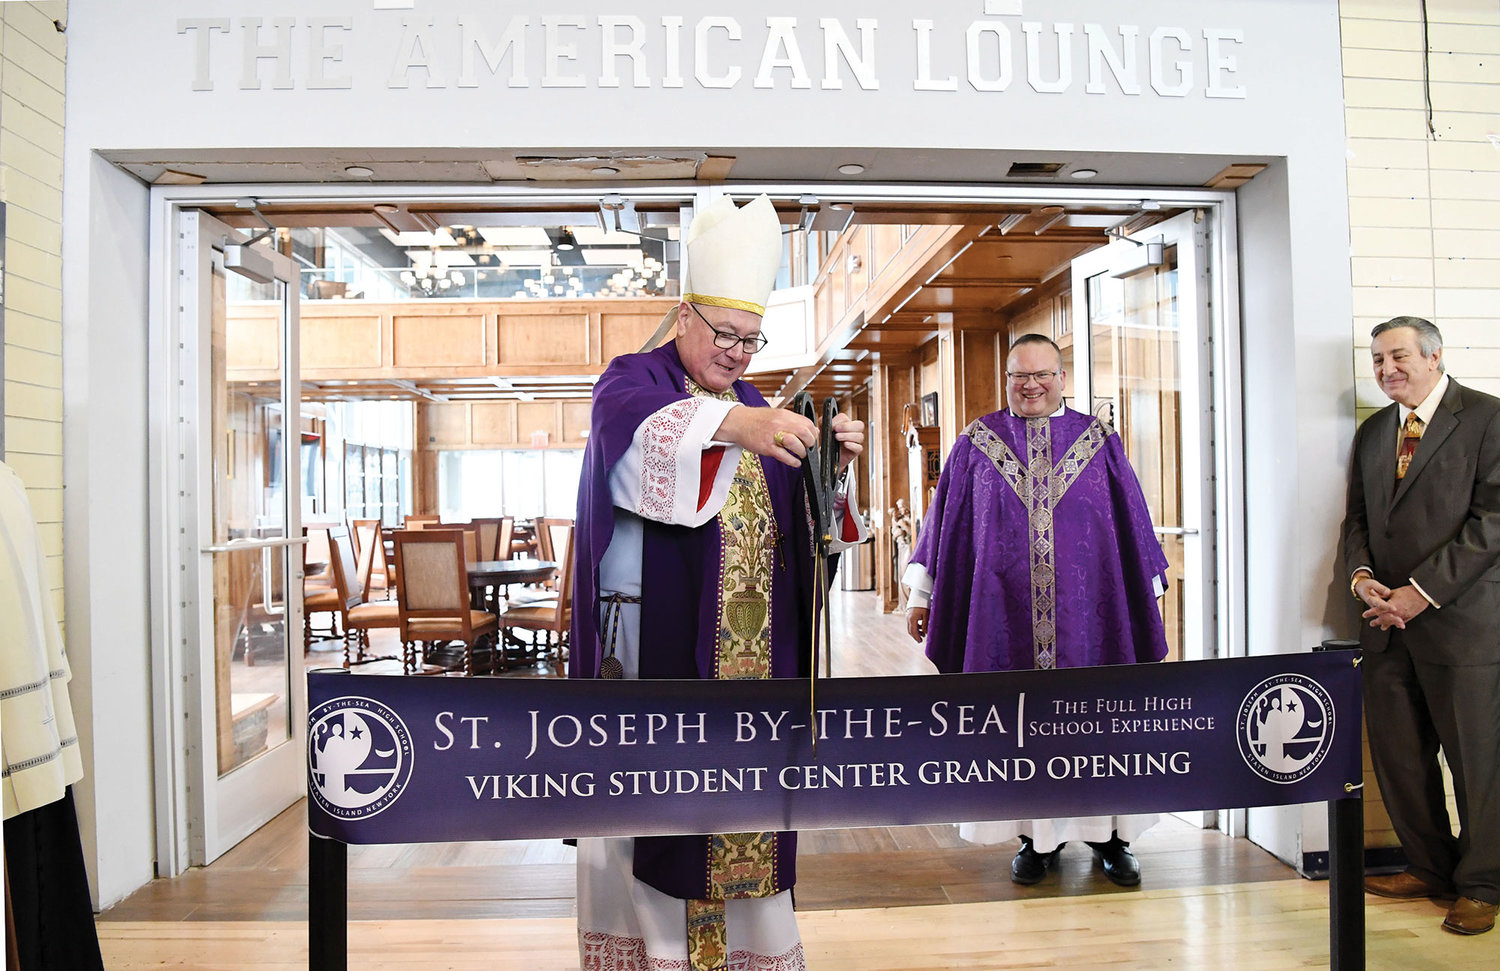 Cardinal Dolan cuts the ribbon to officially open the St. Joseph by-the-Sea High School Viking Student Center on Staten Island April 8. Looking on is Father Michael Reilly, principal.